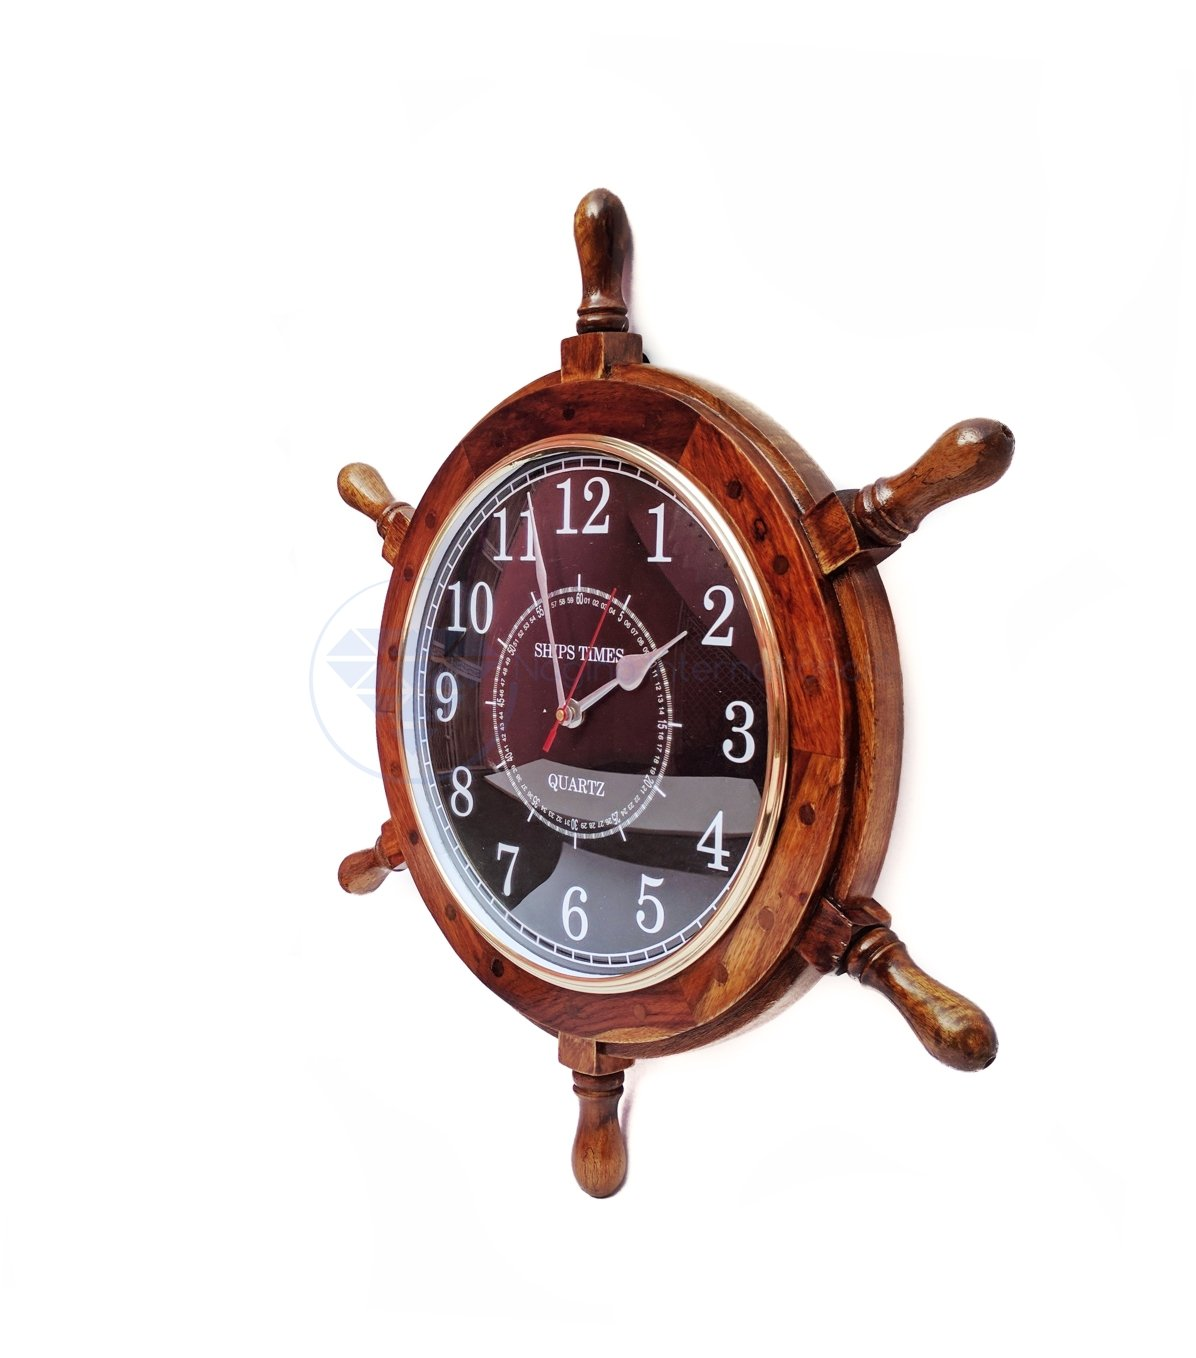 Nagina International Nautical Hand Crafted Wooden Ship Wheel